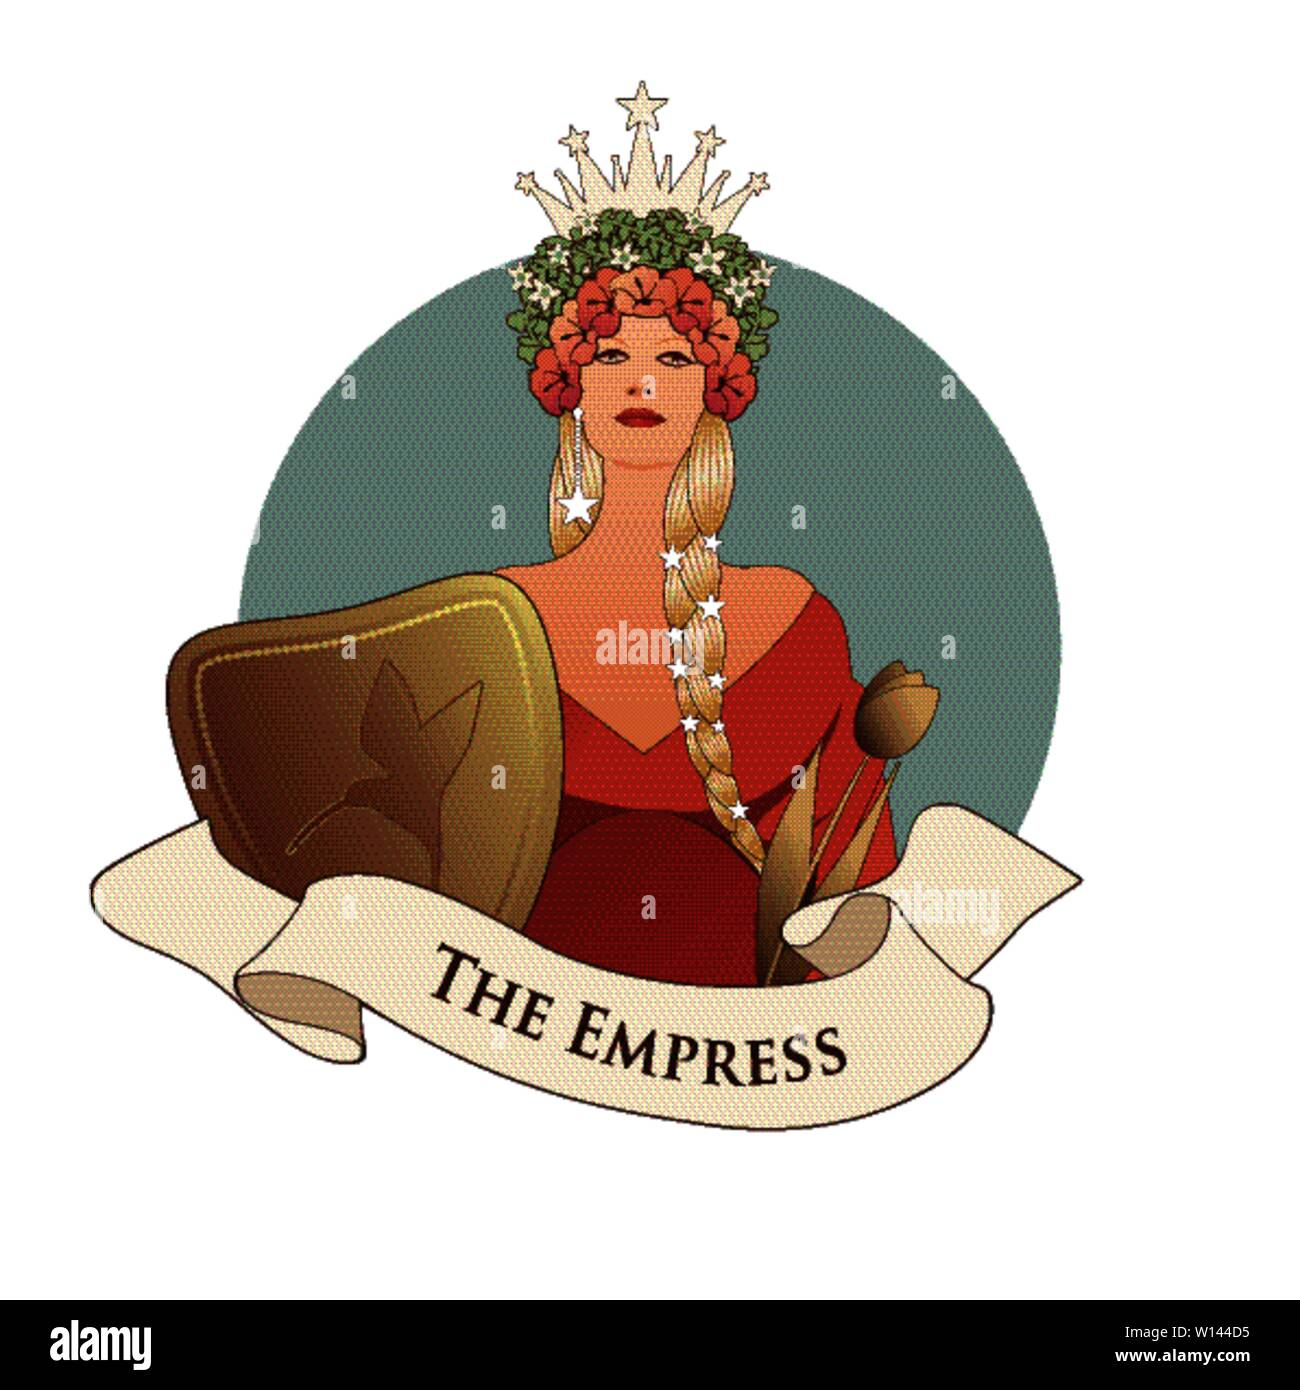 Major Arcana Emblem Tarot Card. The Empress. Beautiful woman with long braids, crown of flowers and stars, holding a shield with a hummingbird and gol - Stock Image